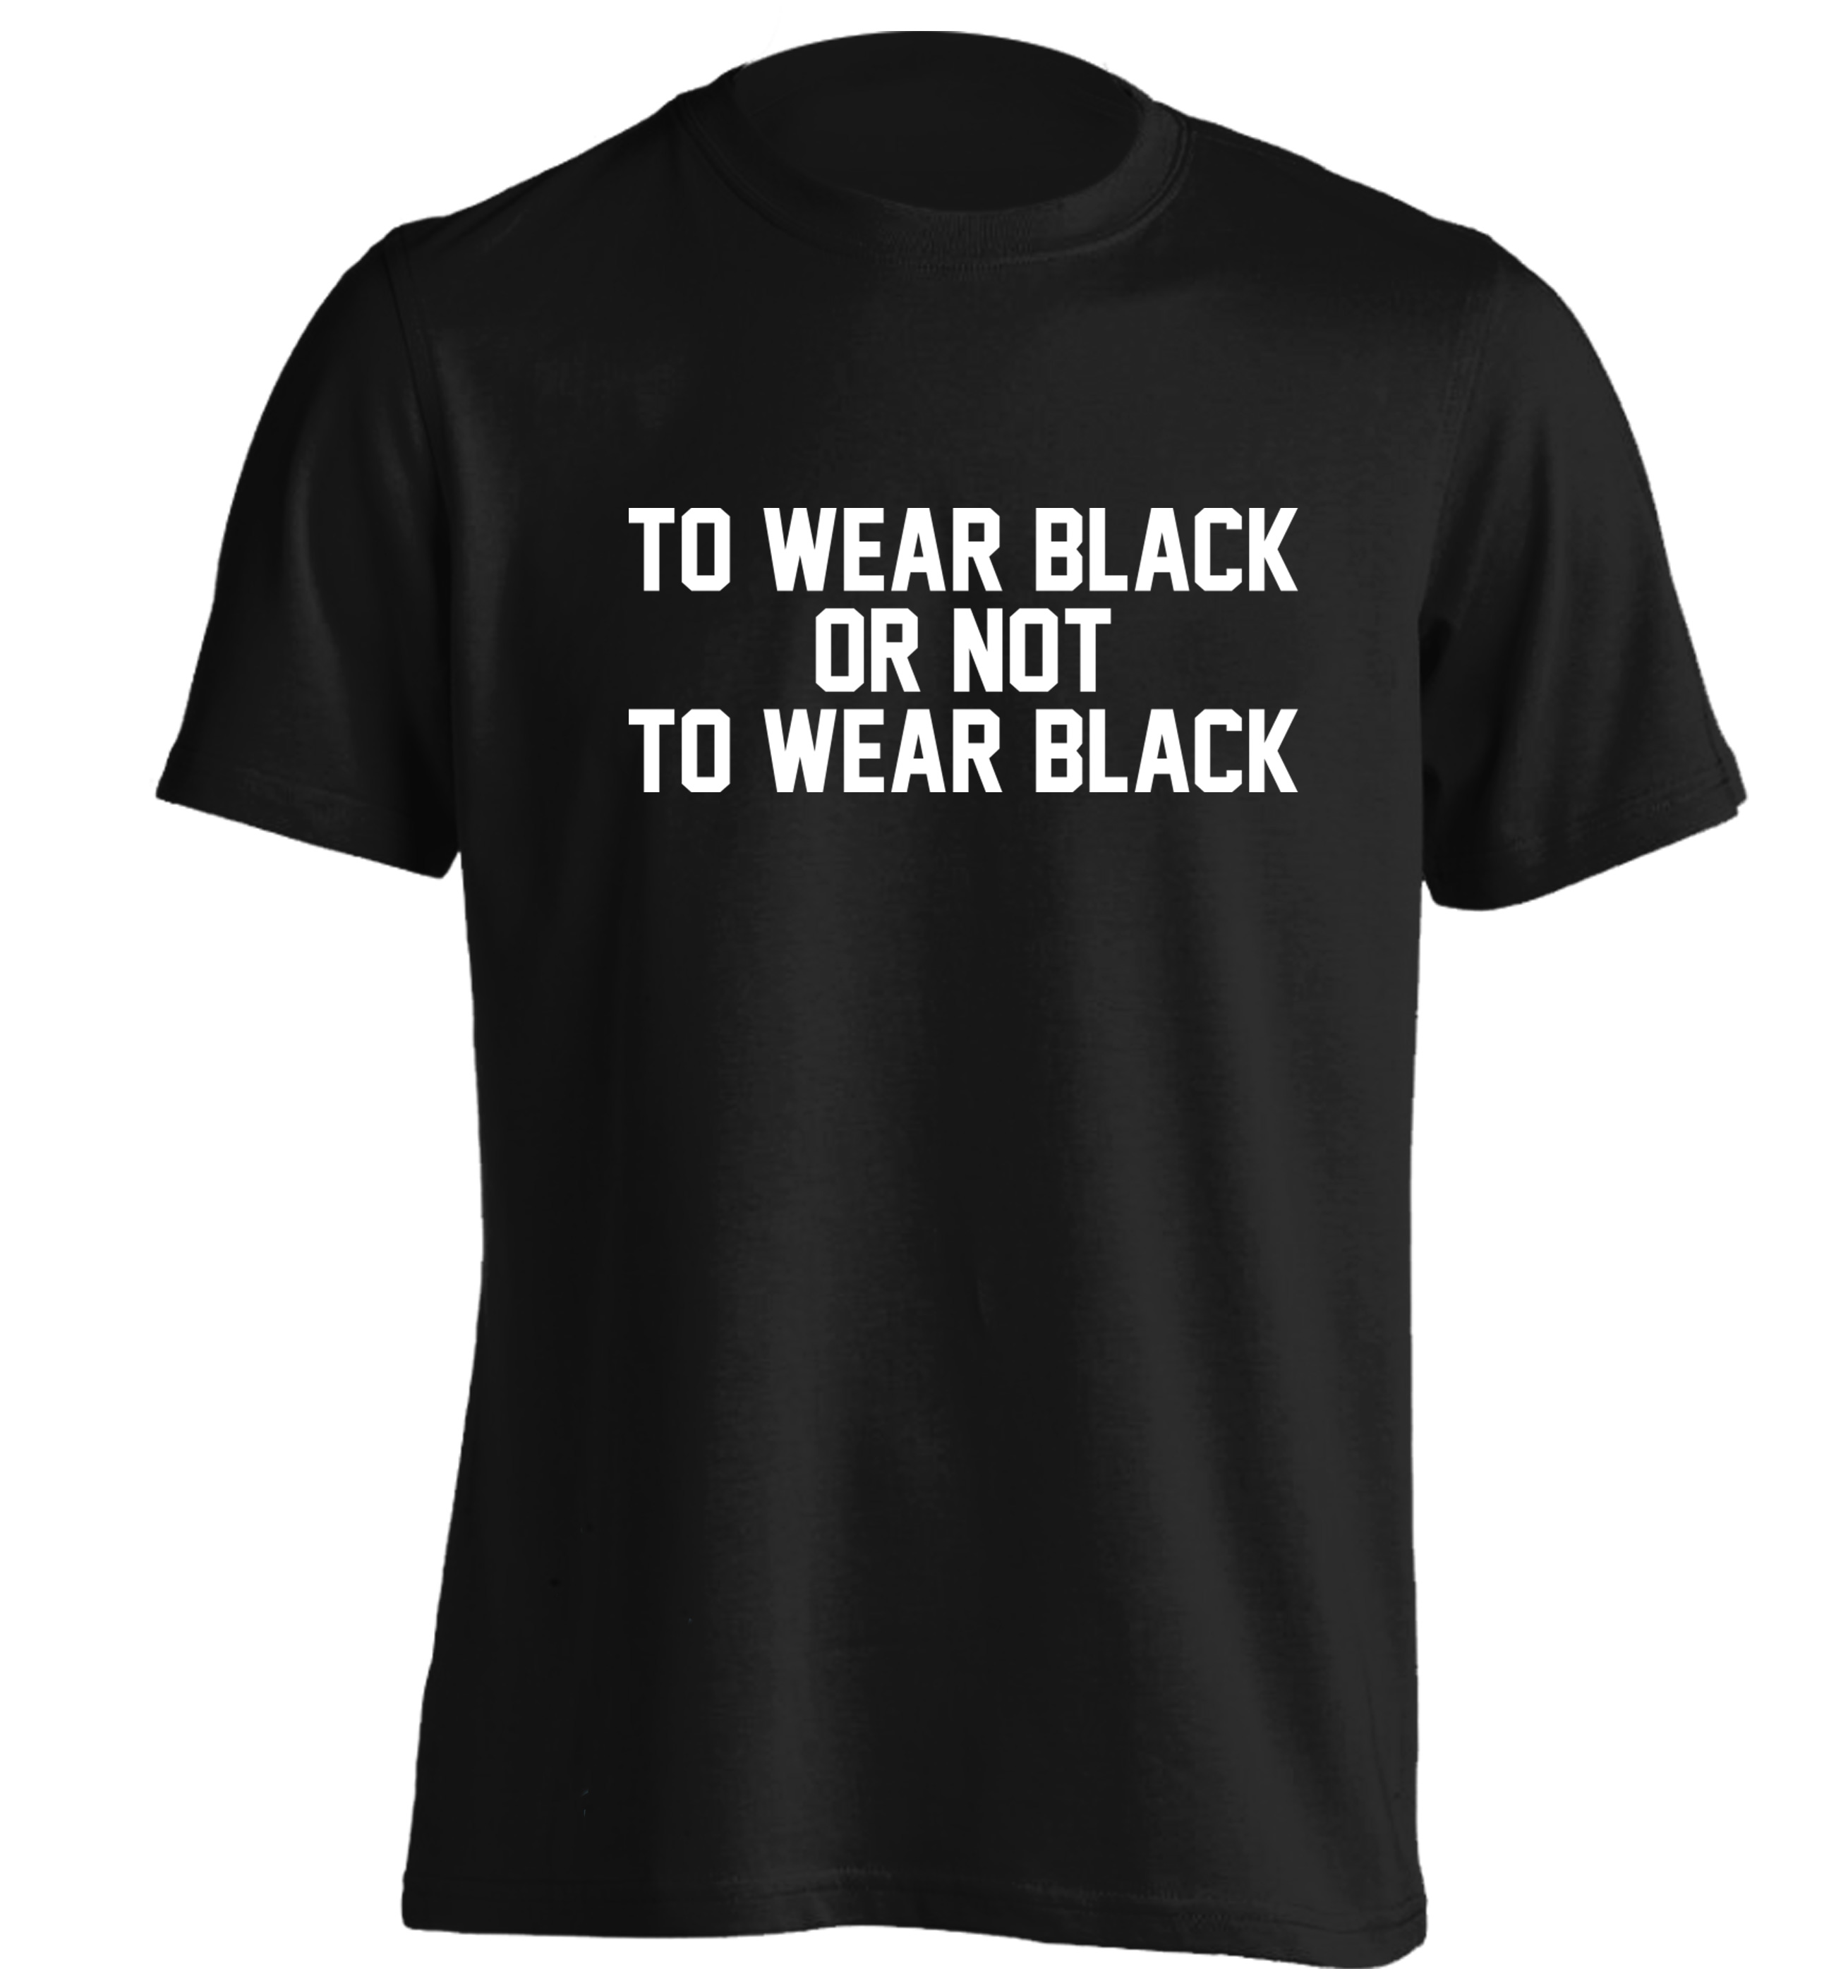 To wear black or not to wear black t shirt grunge tumblr instagram hipster slogan funny